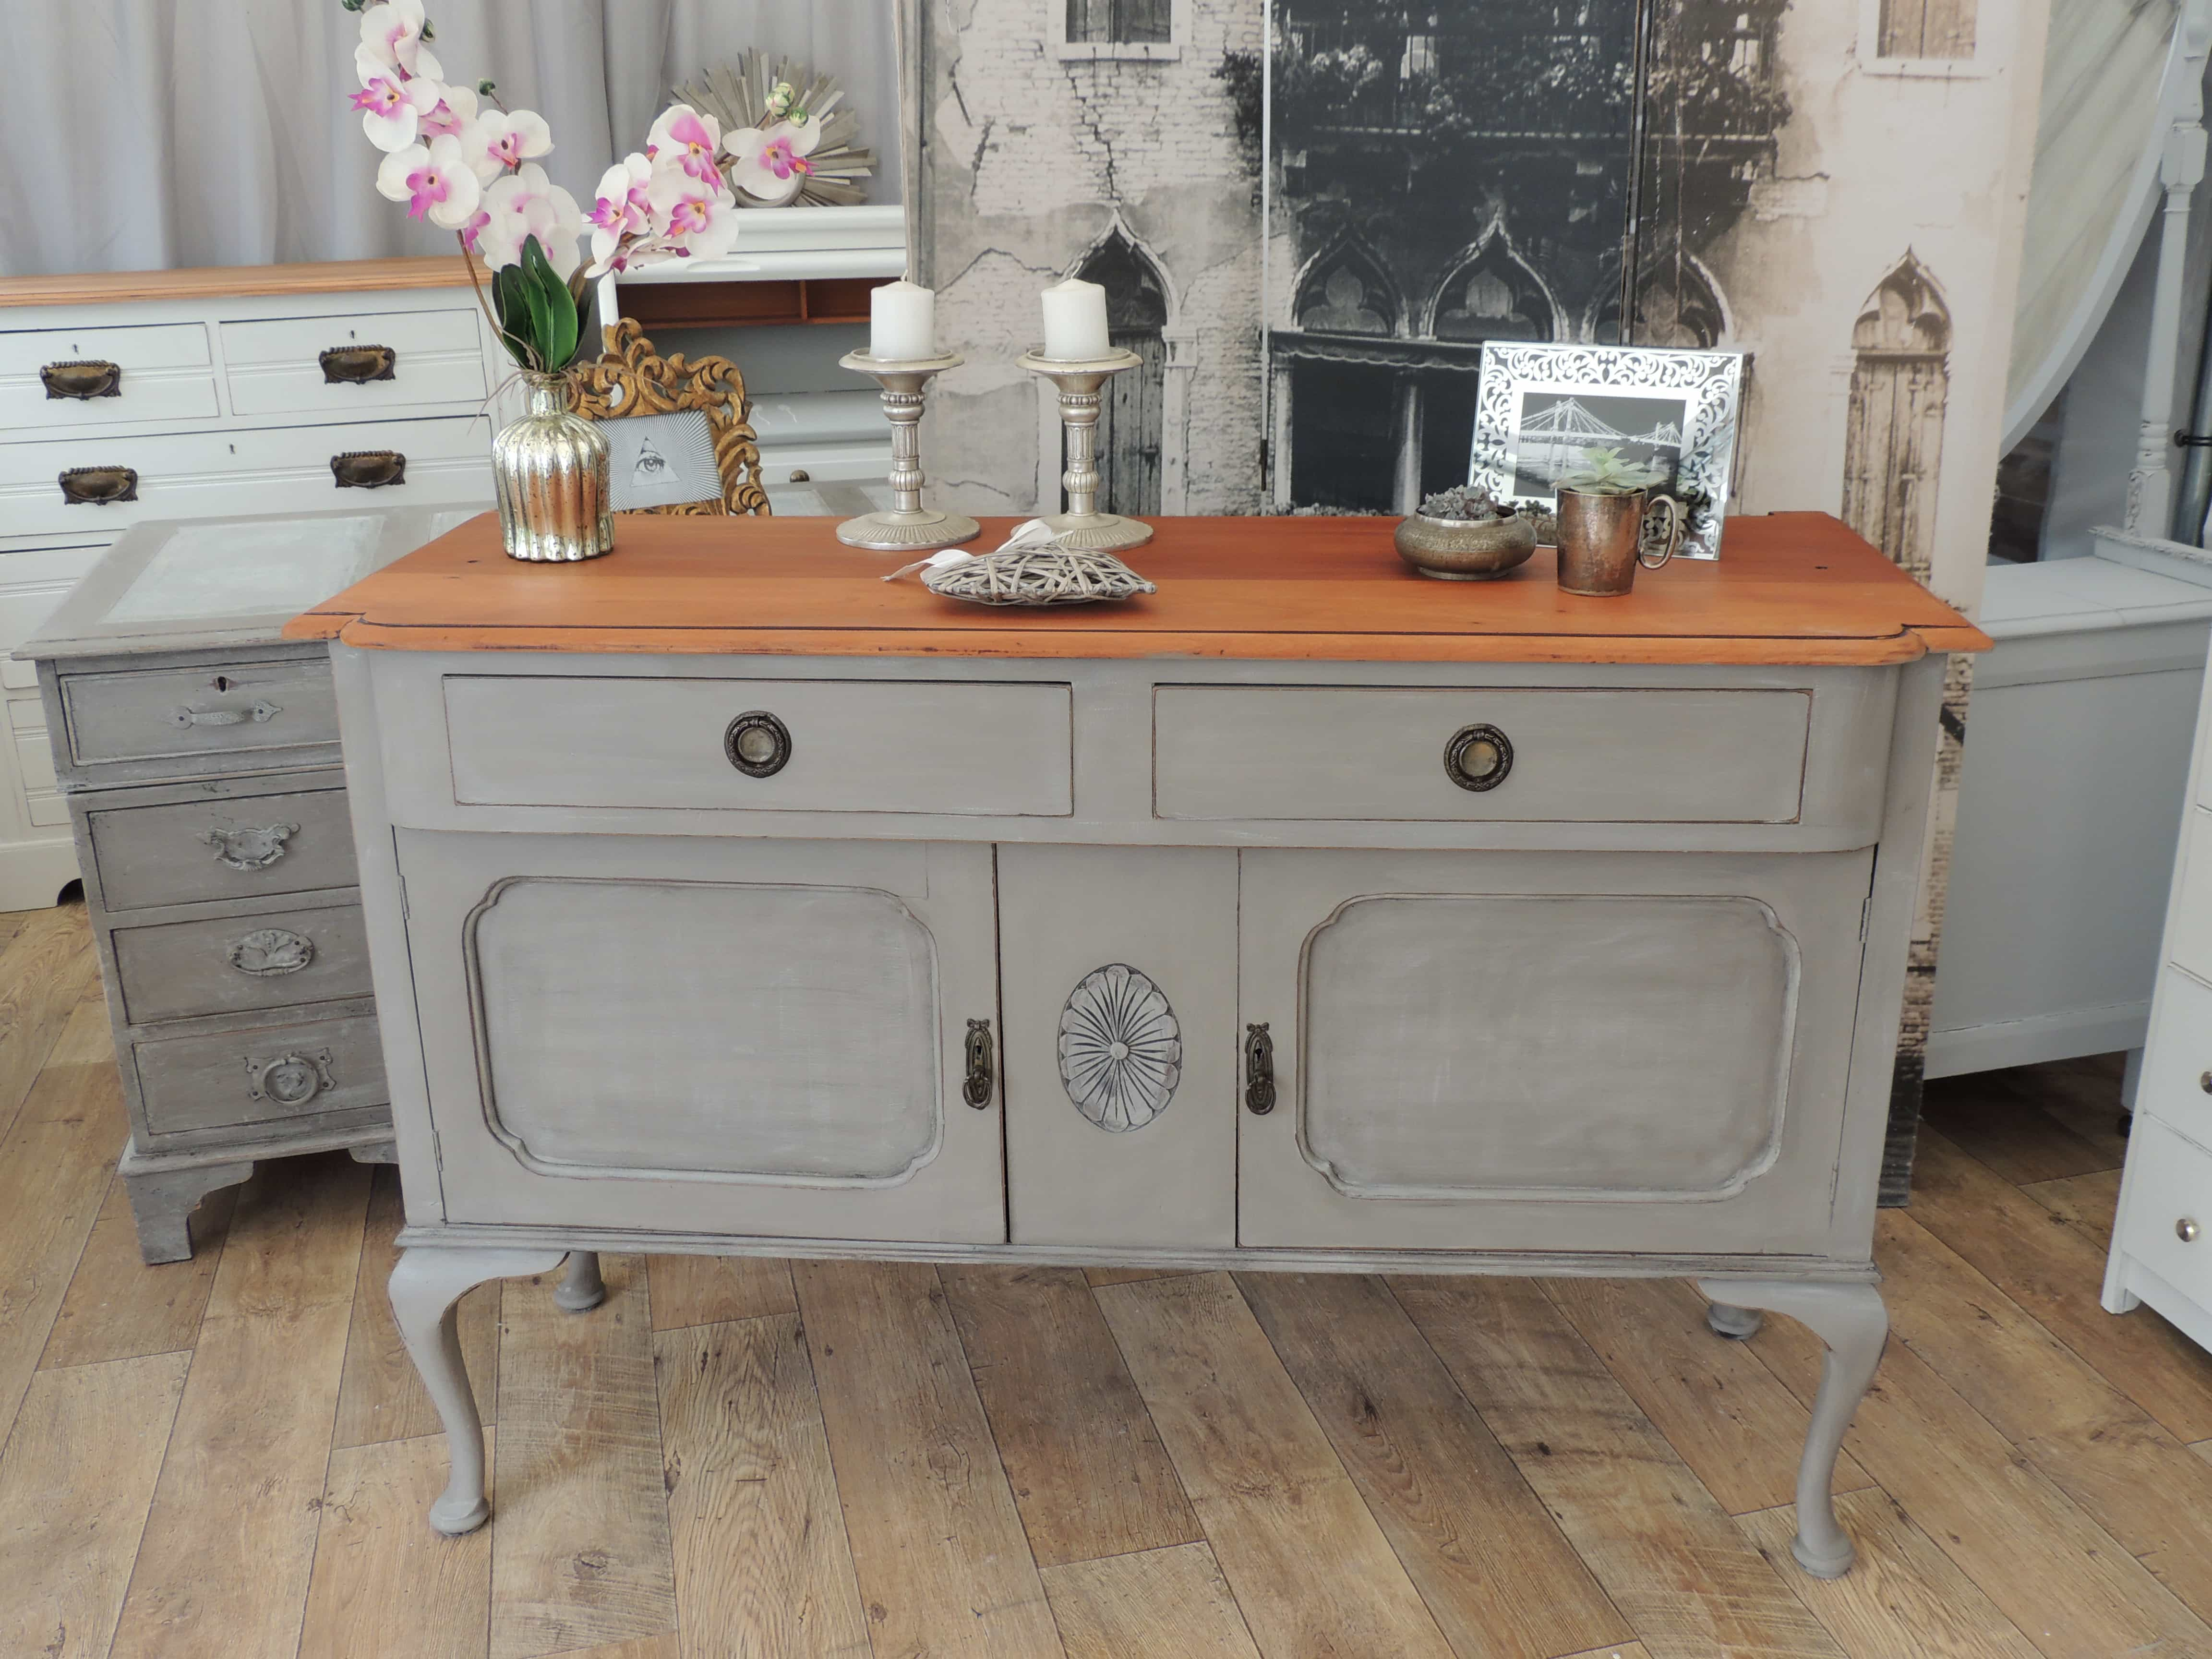 Sideboard Shabby Chic Shabby Chic Edwardian Sideboard Eclectivo London Furniture